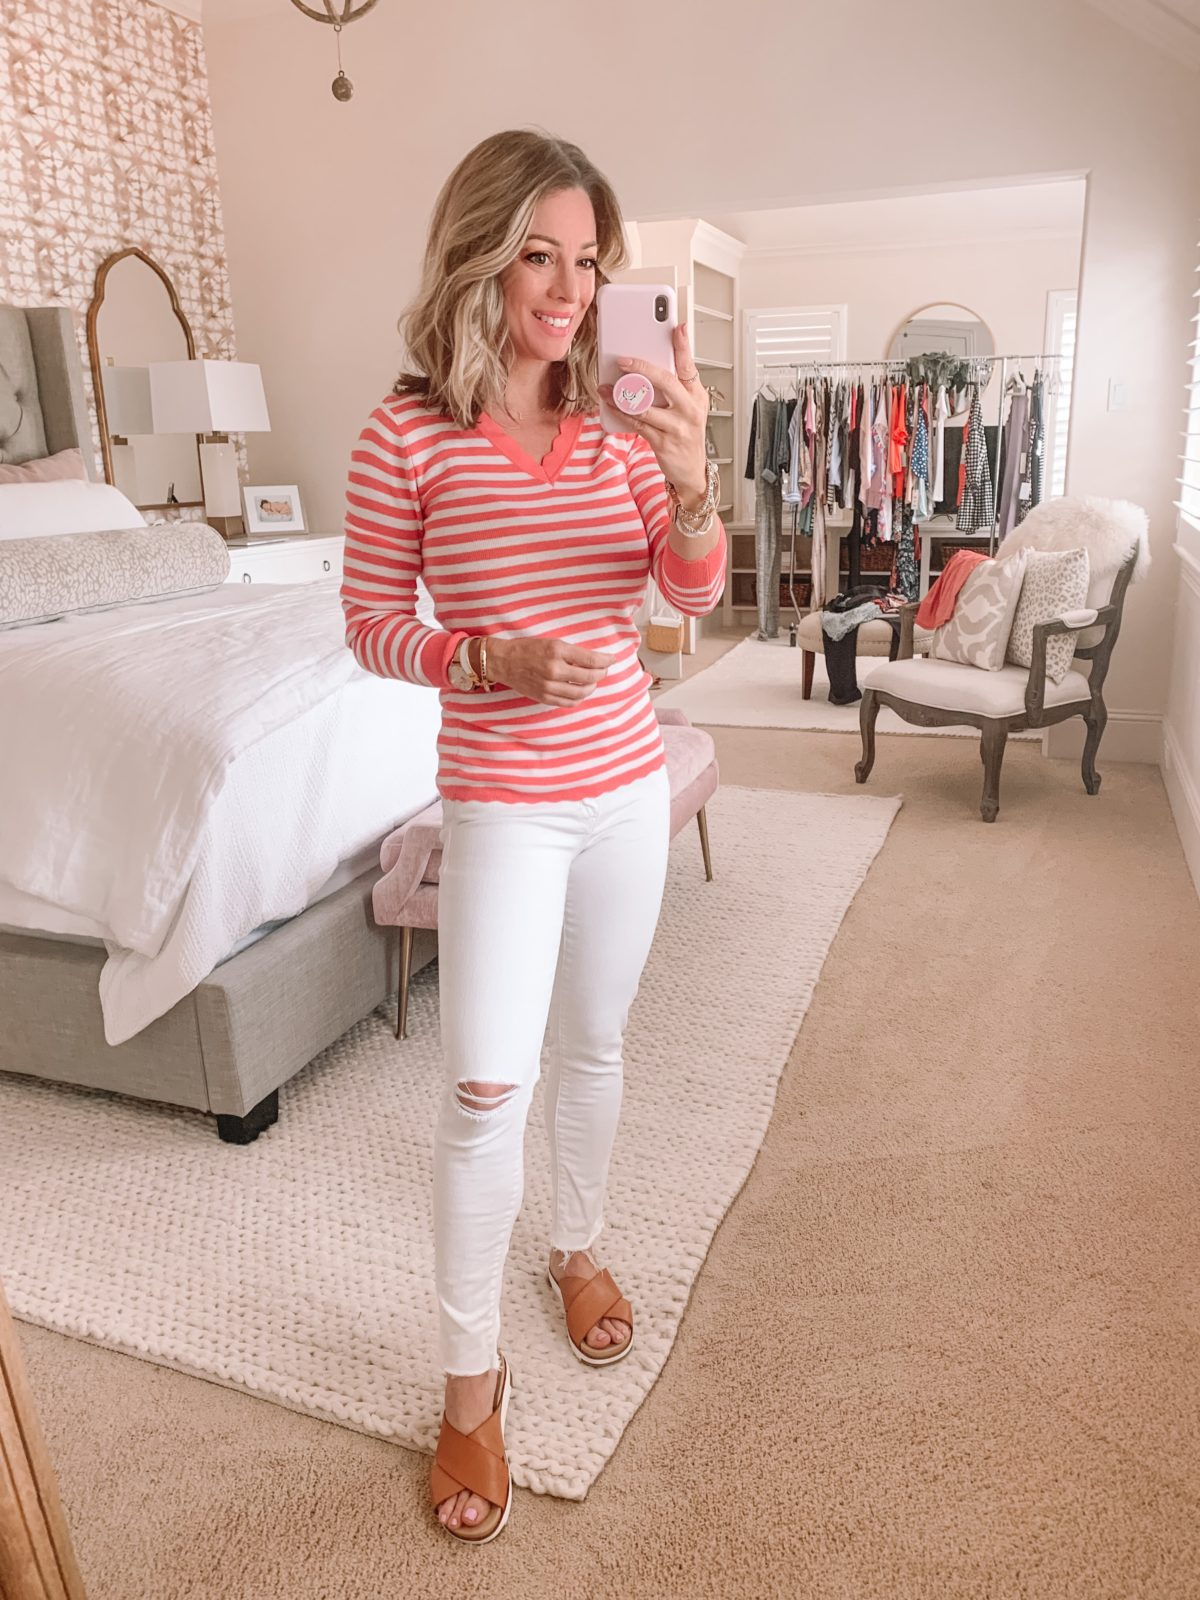 Dressing Room Finds Nordstrom and LOFT, Striped Scalloped Neck Sweater, White DIstressed Jeans, Slide Sandlas